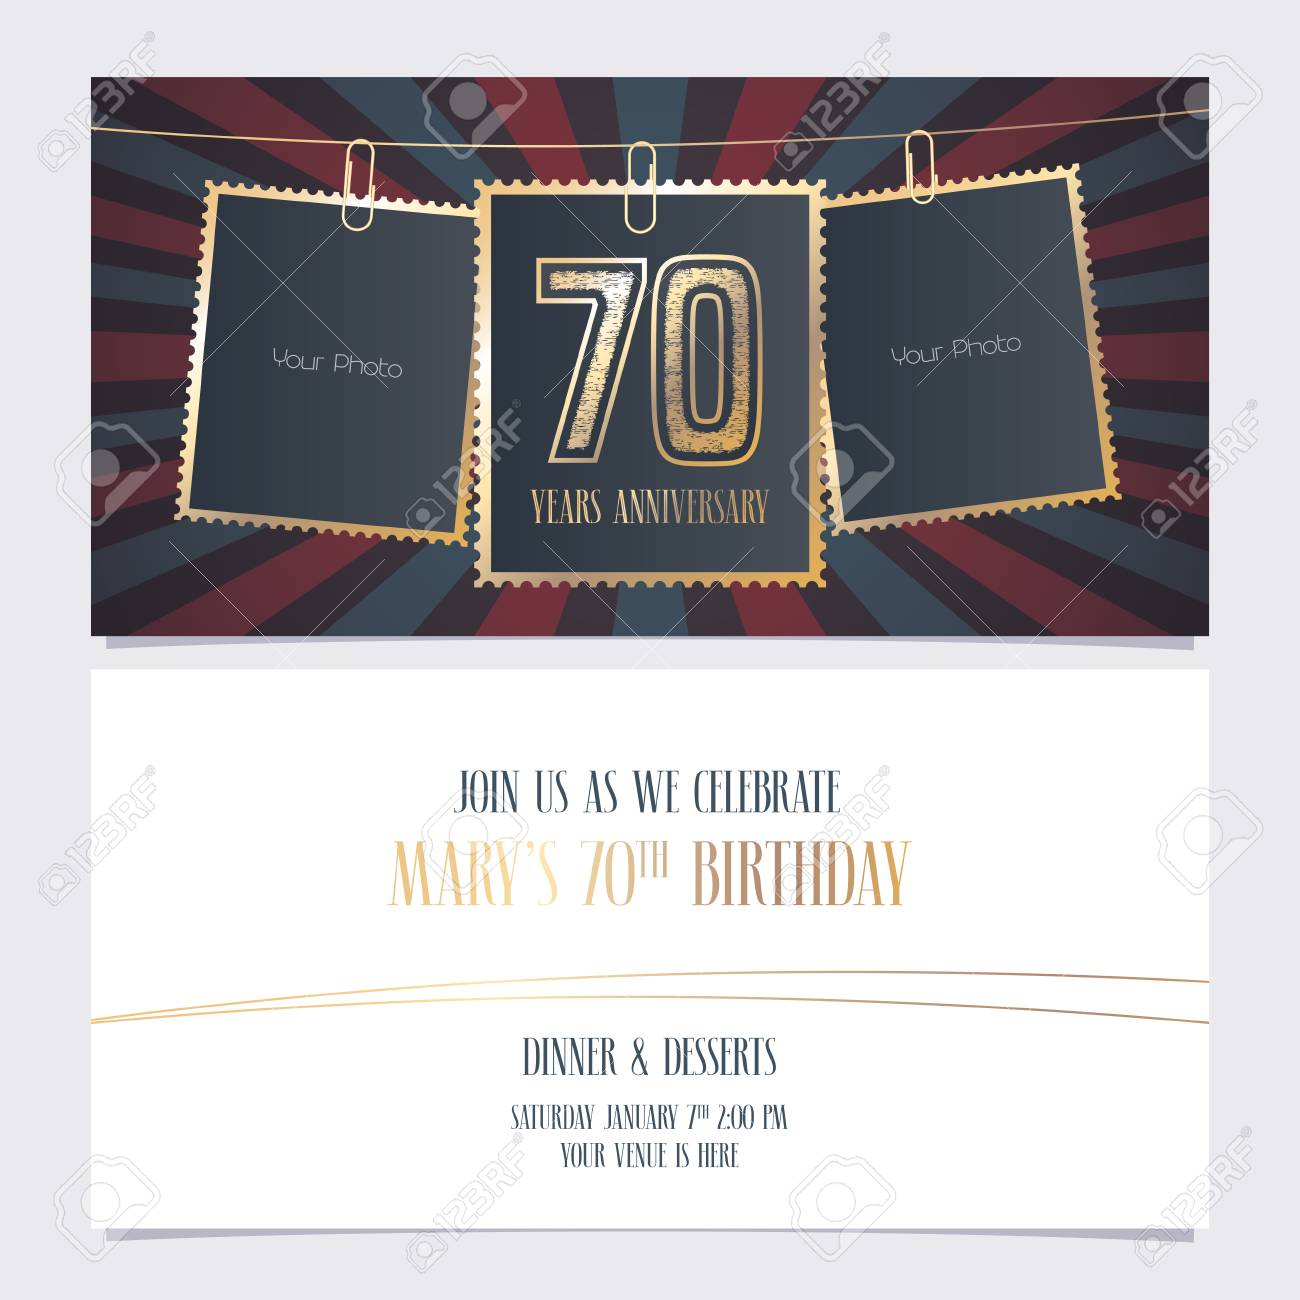 70 years anniversary party invitation vector template illustration